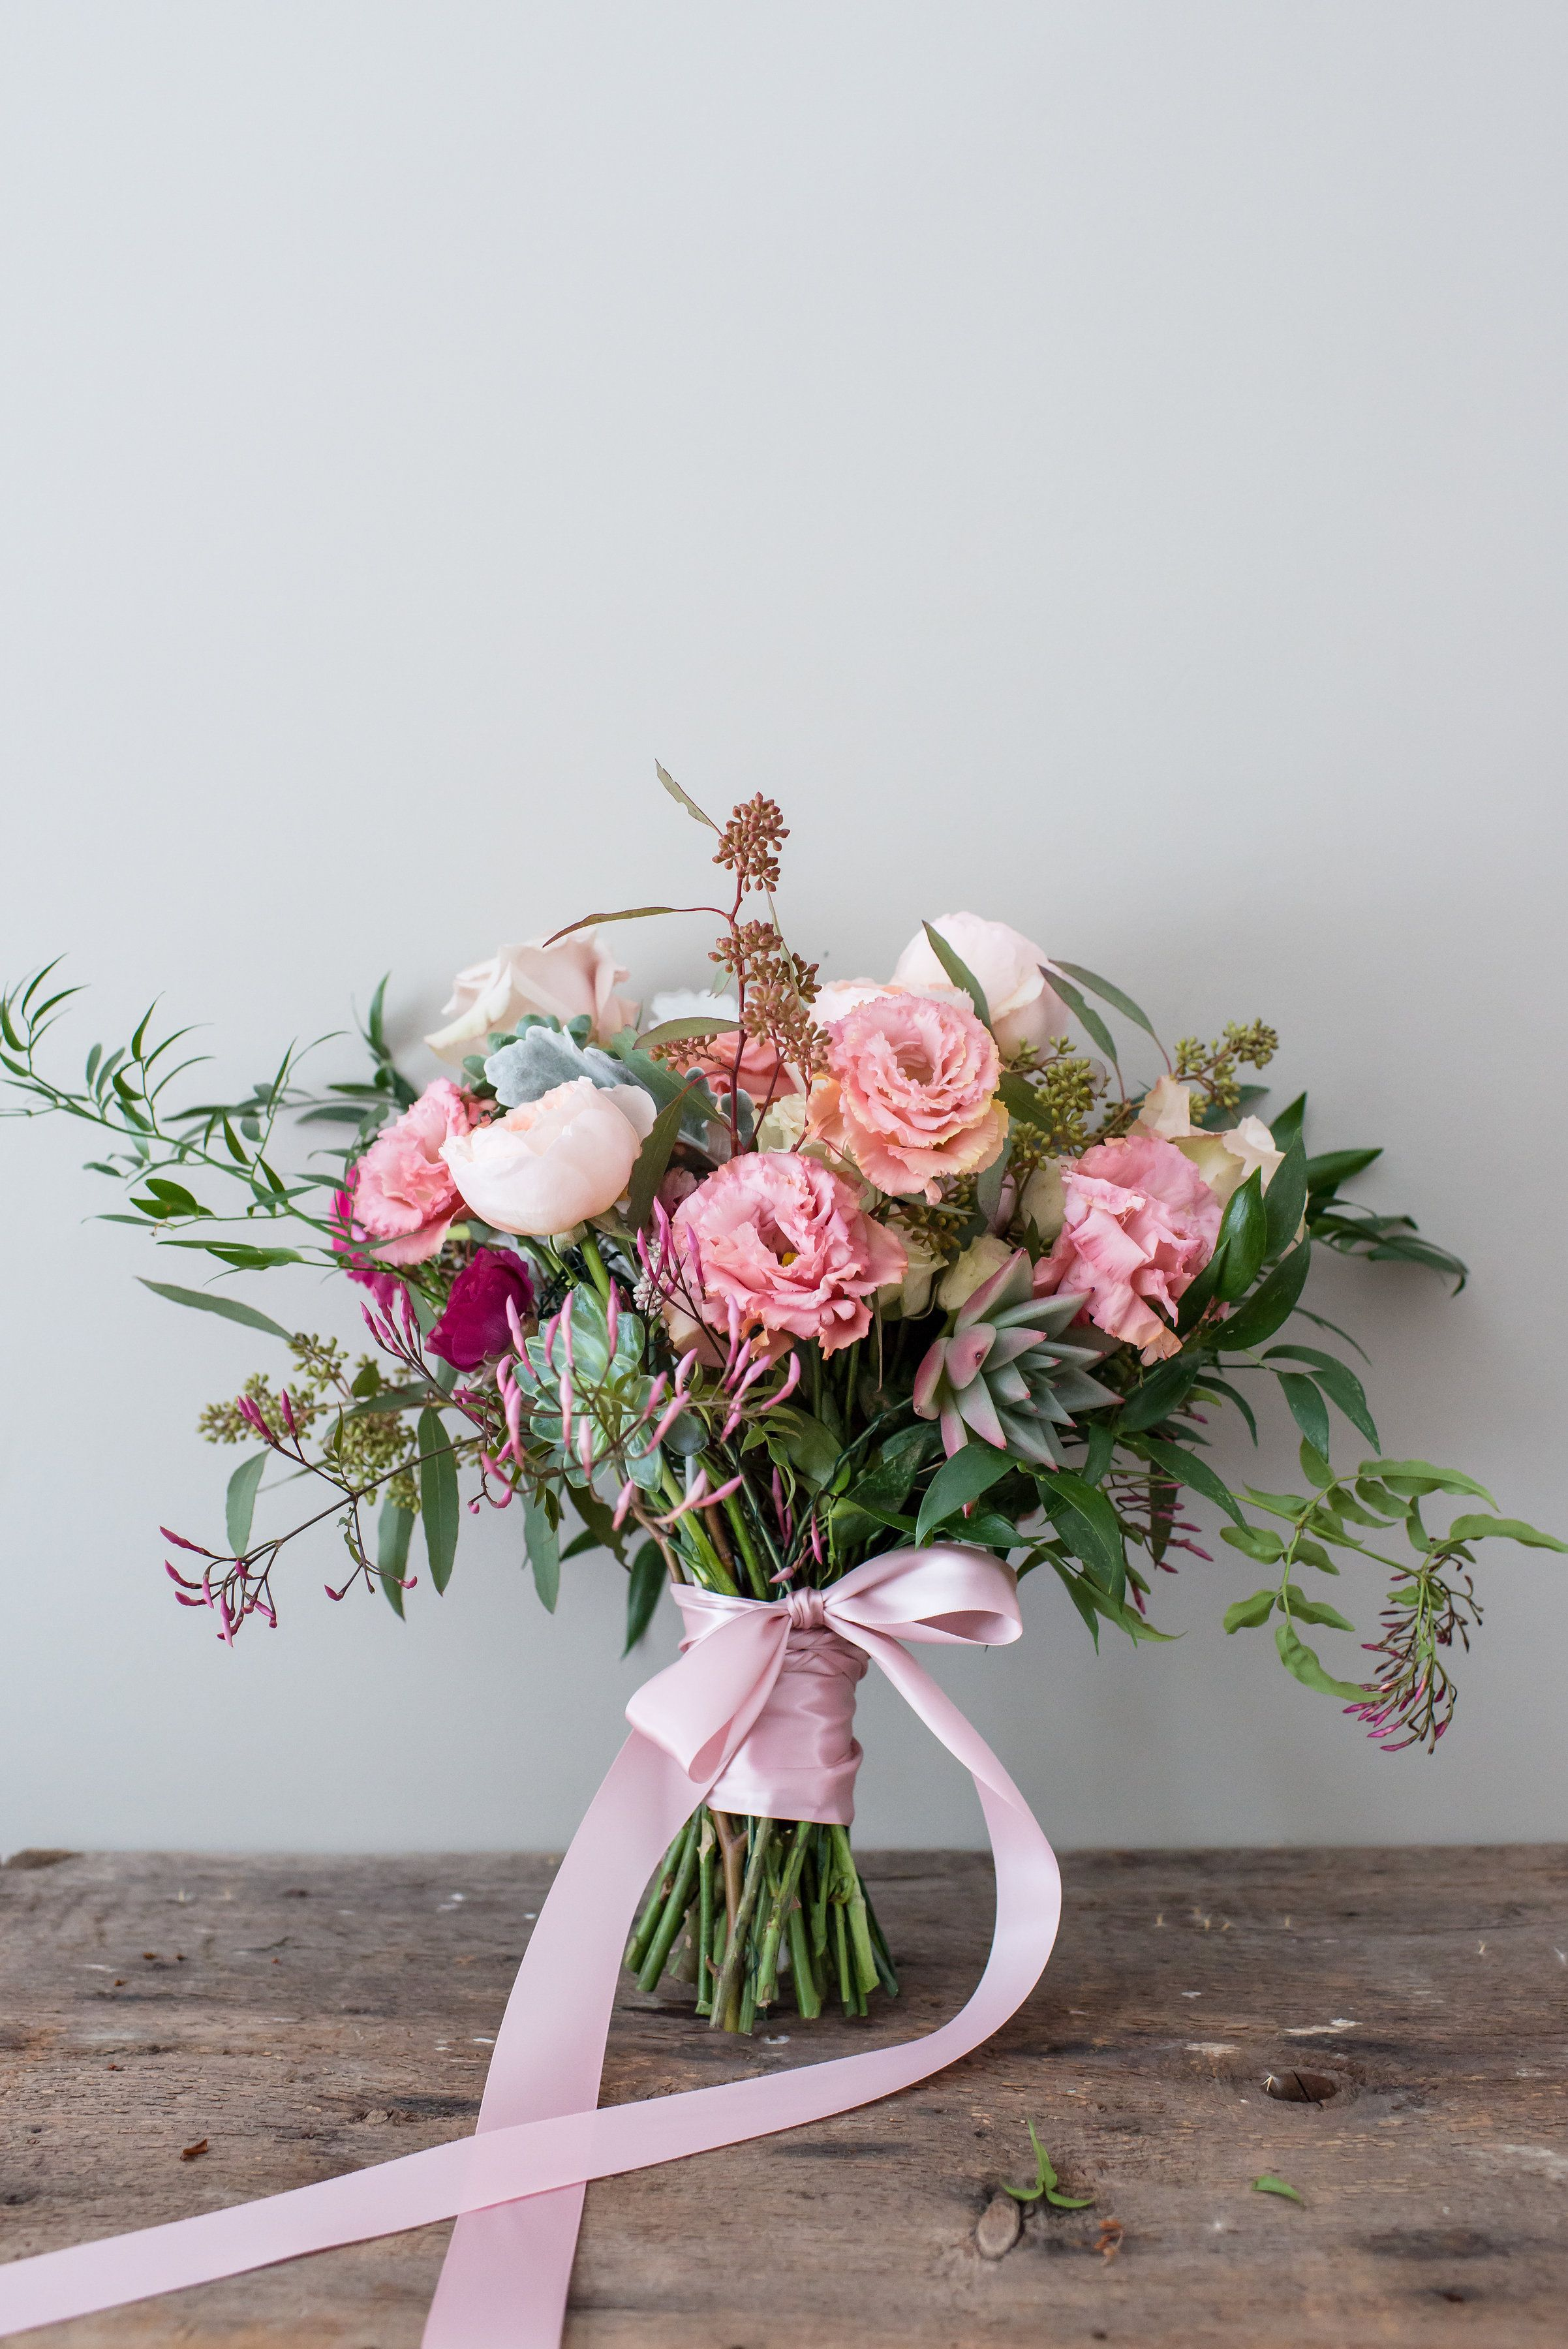 Romantic Garden Style Wedding Bouquet With Blush Peach And Pink Tones Garden Roses Ranu With Images Wedding Bouquets Pink Pink Rose Wedding Bouquet Rose Wedding Bouquet